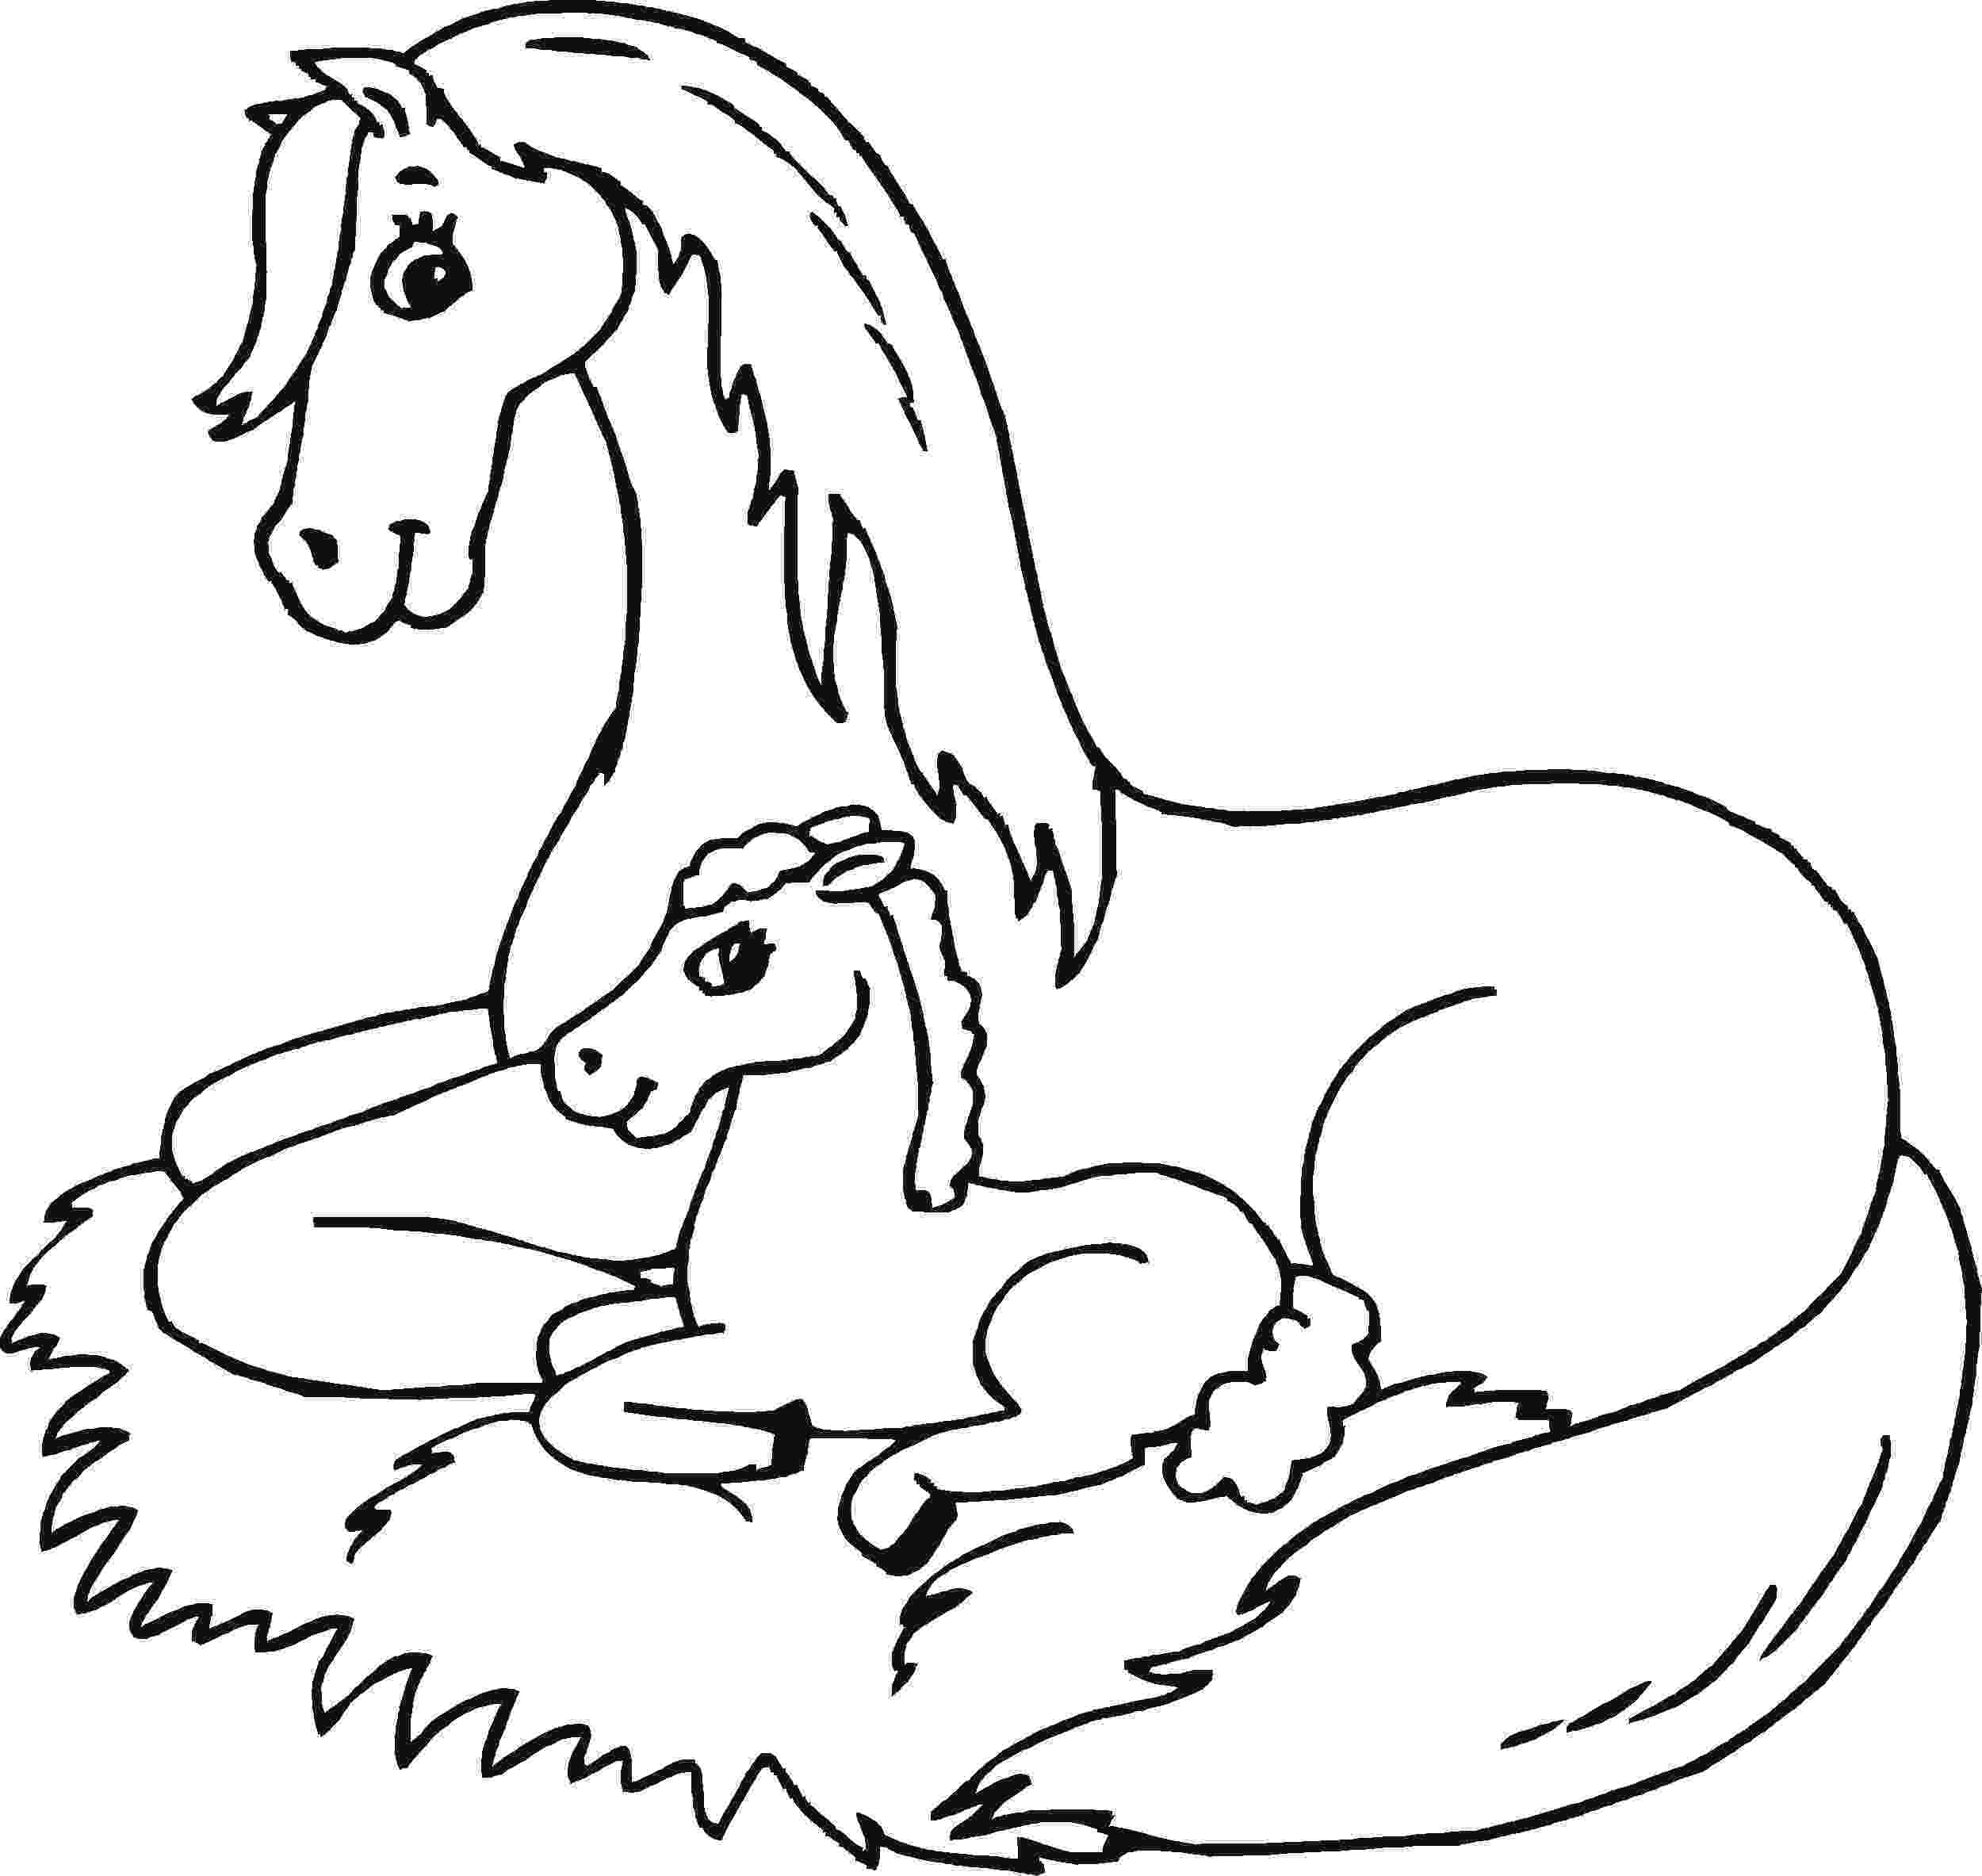 horse colouring baby horse coloring pages coloring pages to download and colouring horse